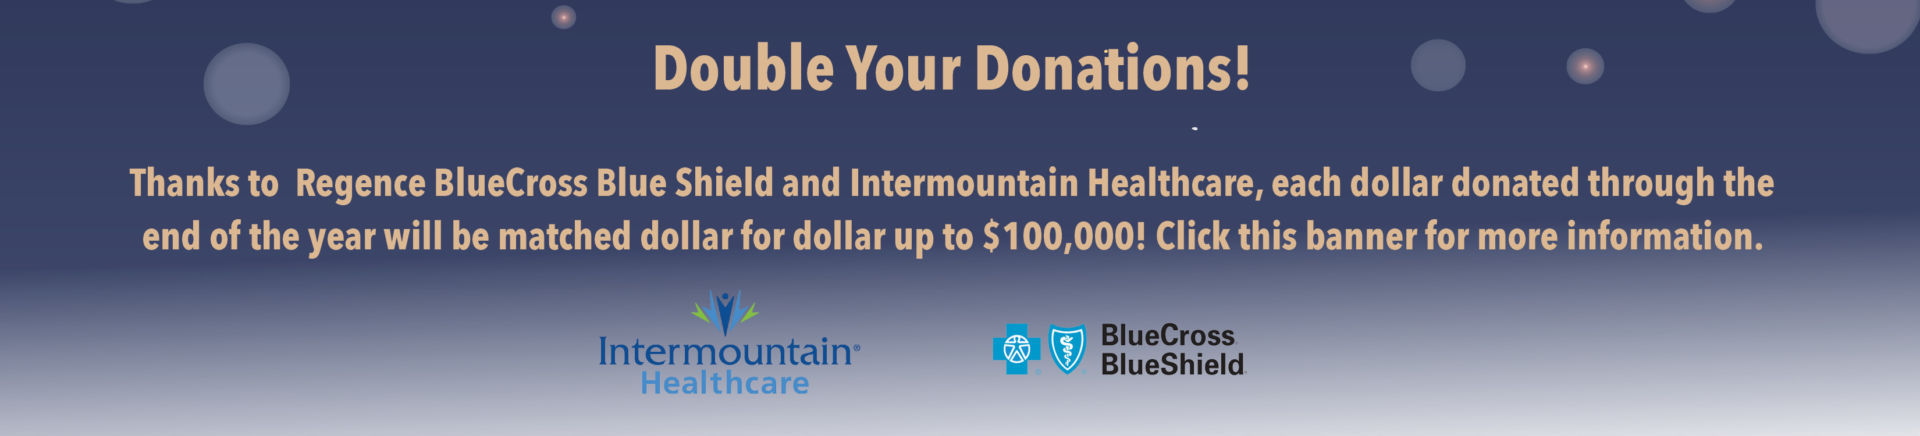 Double Your Donations Banner